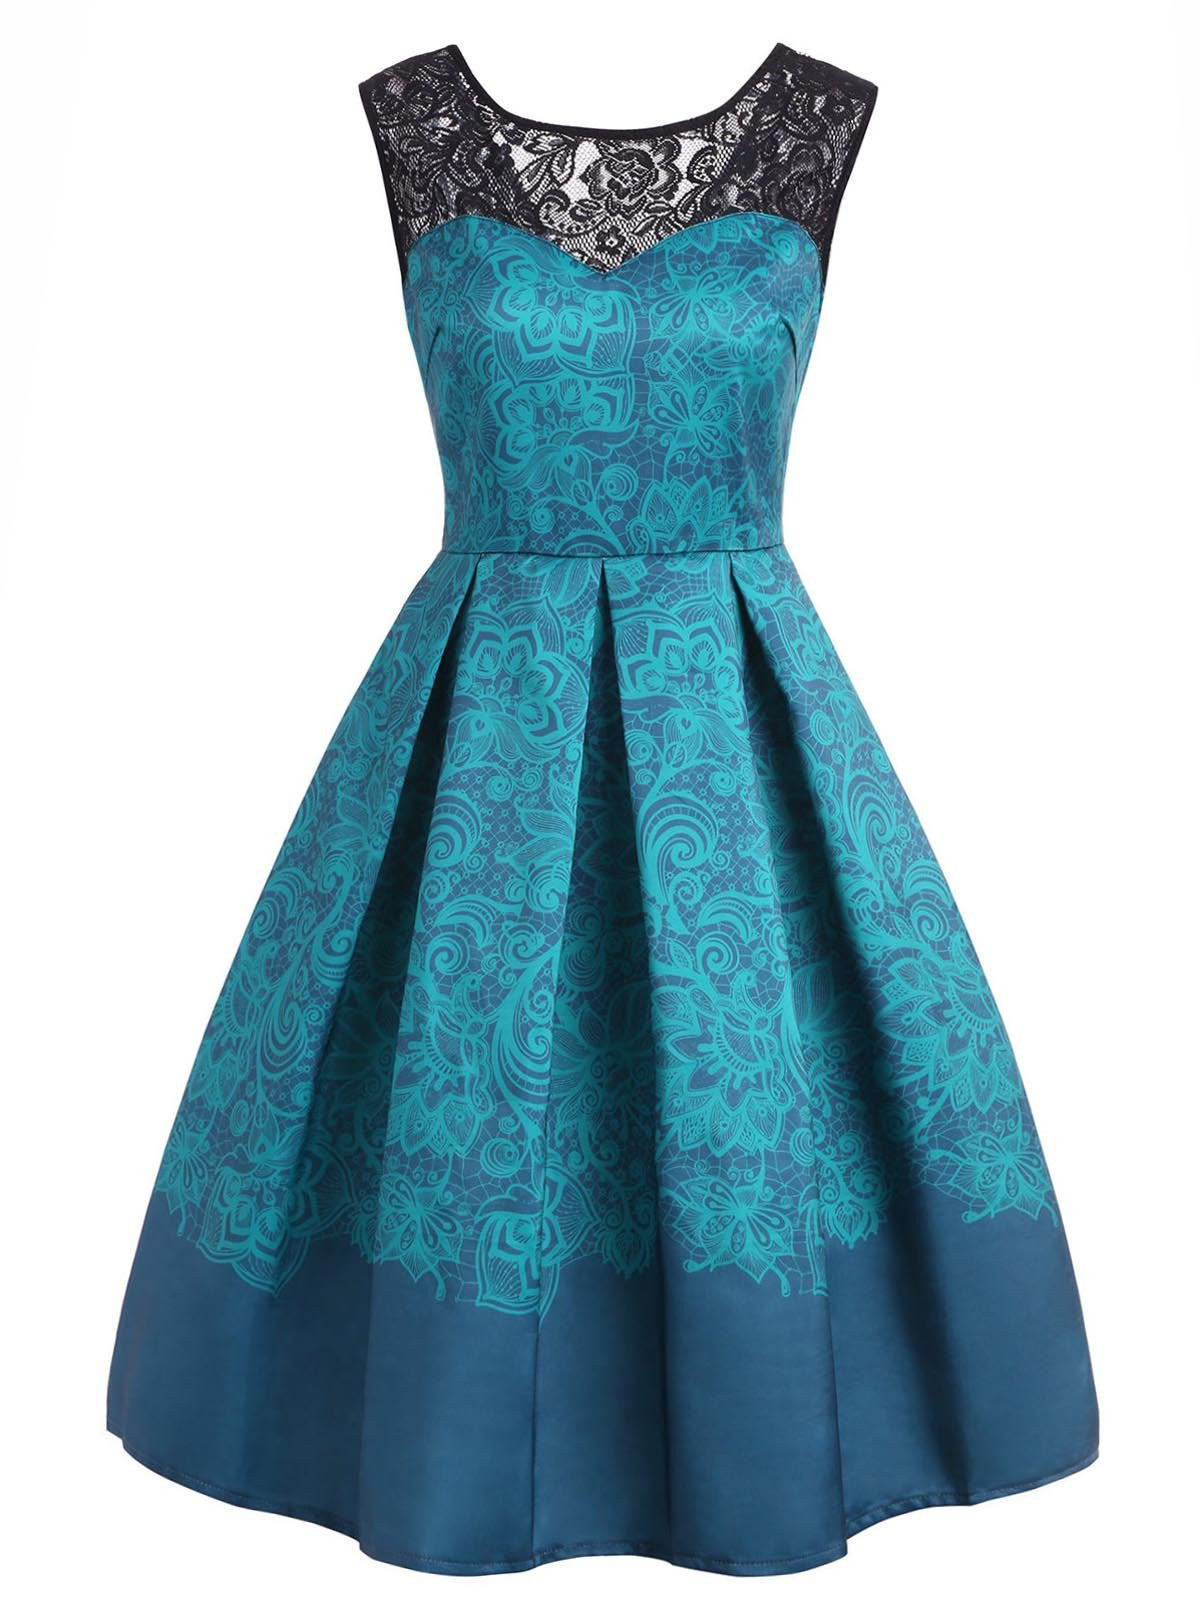 1950s Lace Floral Print Swing Dress – Retro Stage - Chic ...